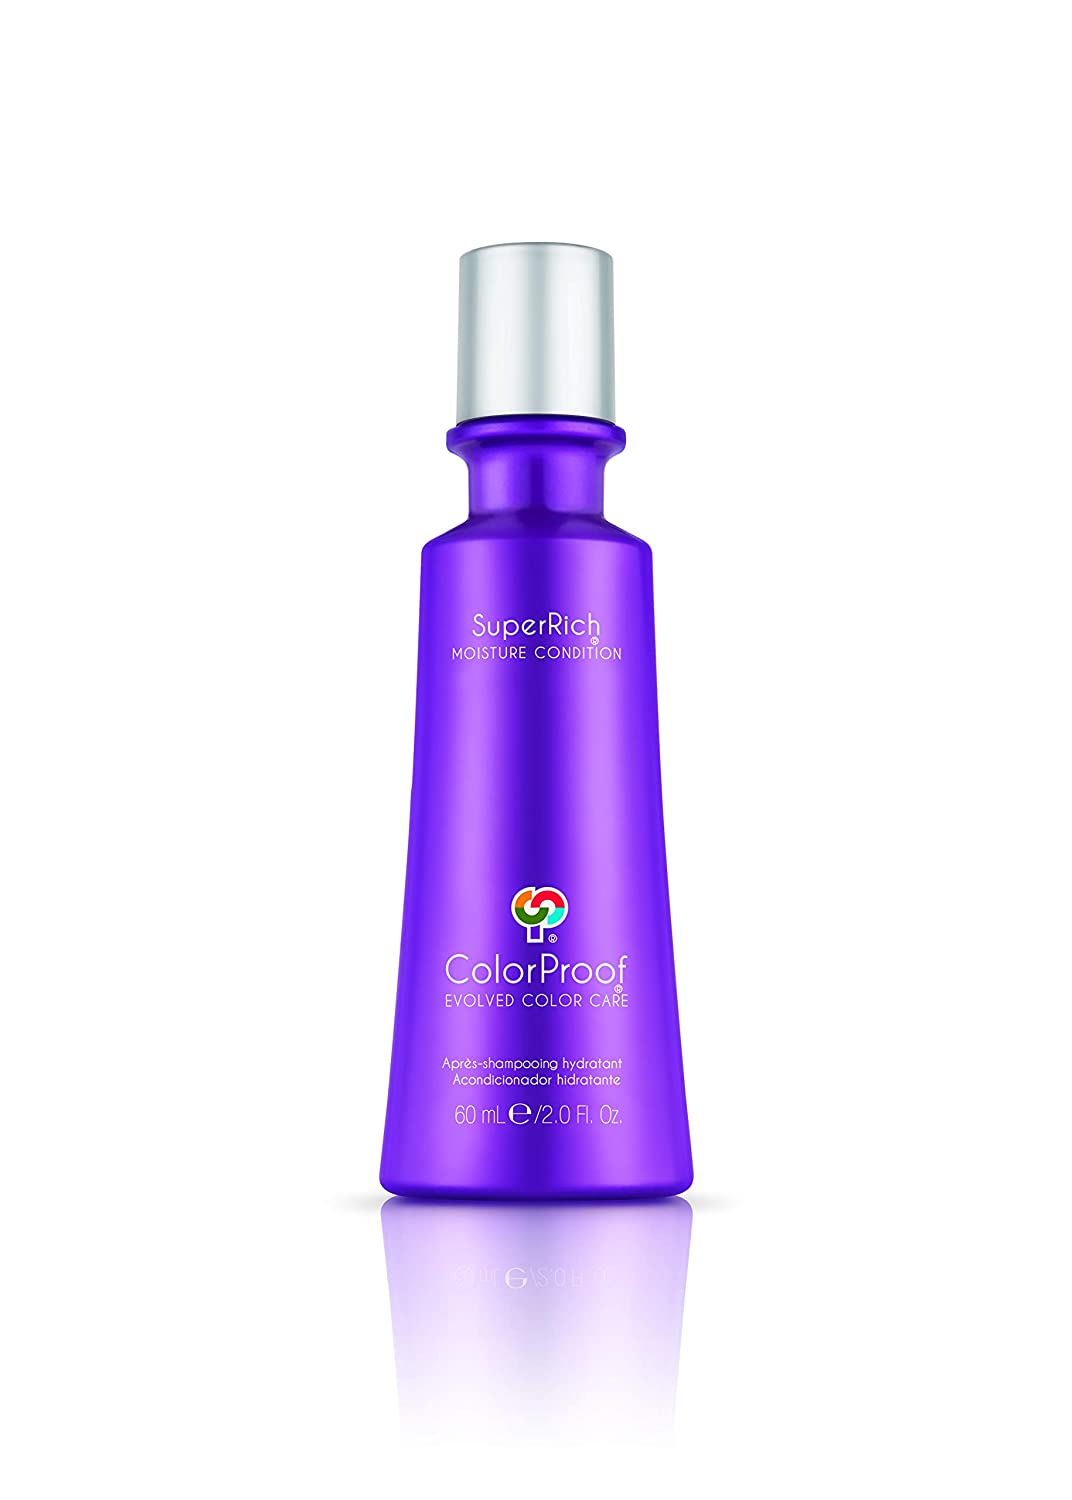 ColorProof SuperRich Moisture Conditioner to Hydrate and Treat Damaged Hair